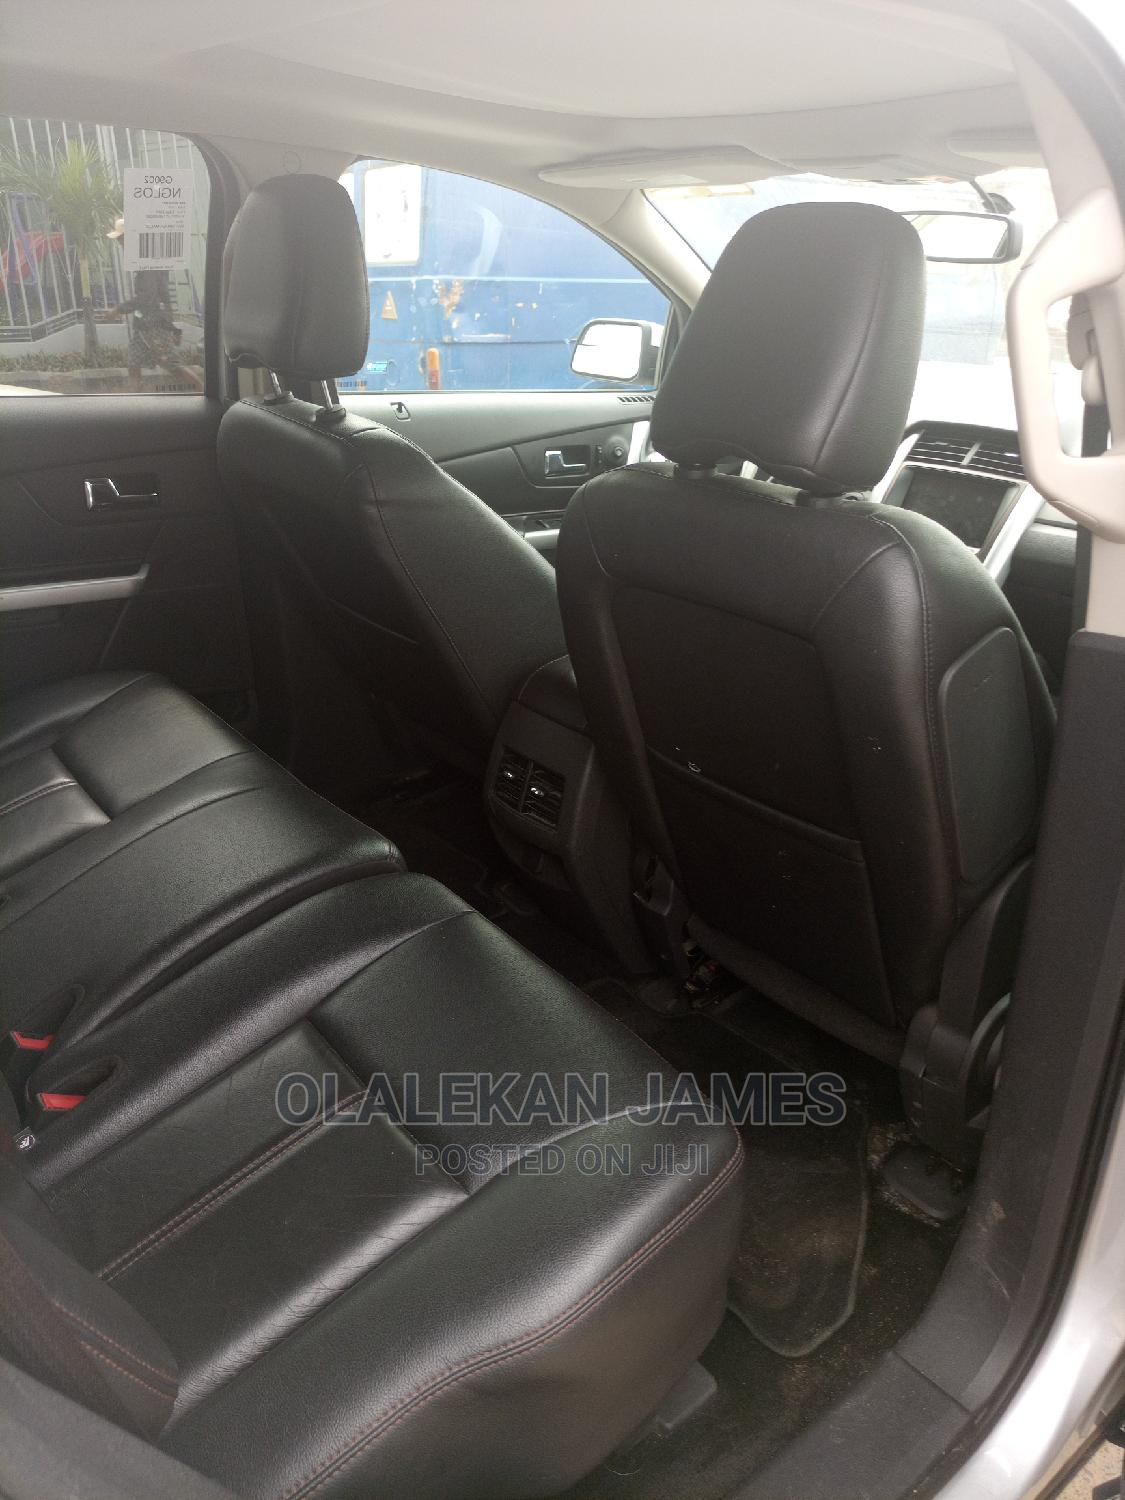 Archive: Ford Edge 2011 SE 4dr FWD (3.5L 6cyl 6A) Silver